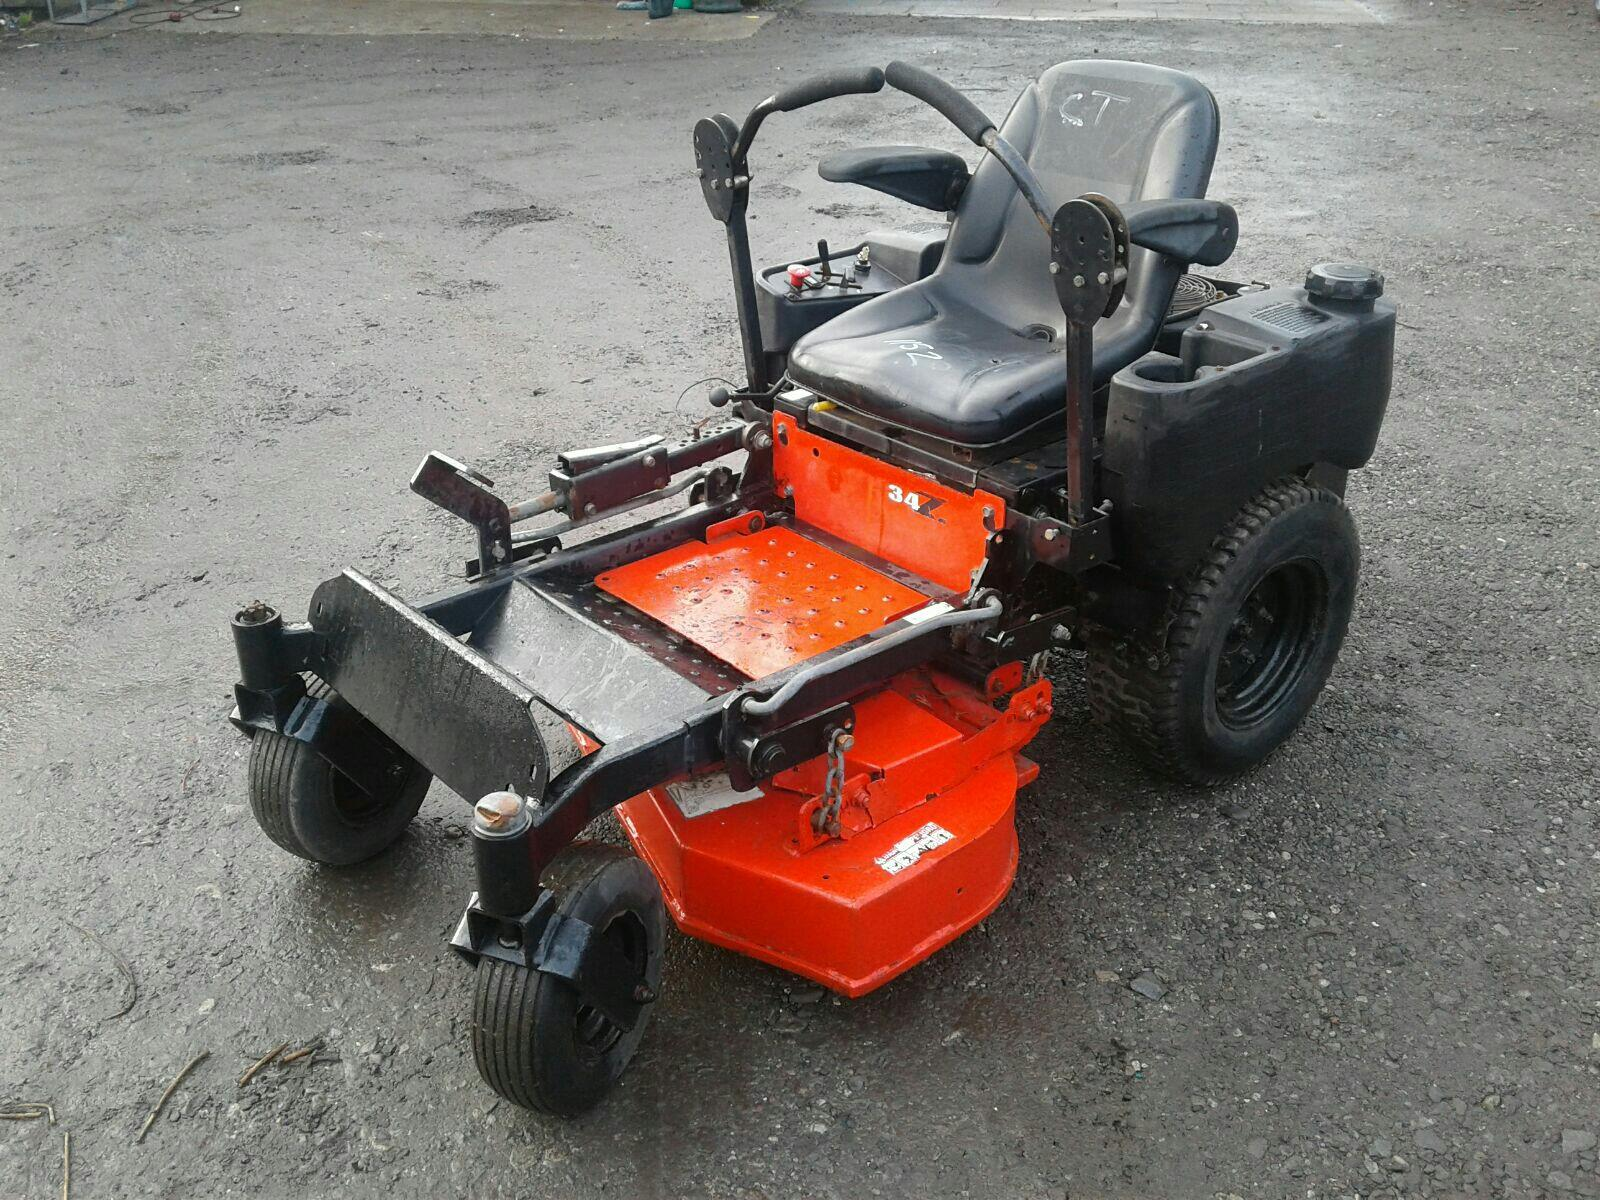 ROUGH CUT ORION MOWER PETROL Miscellaneous